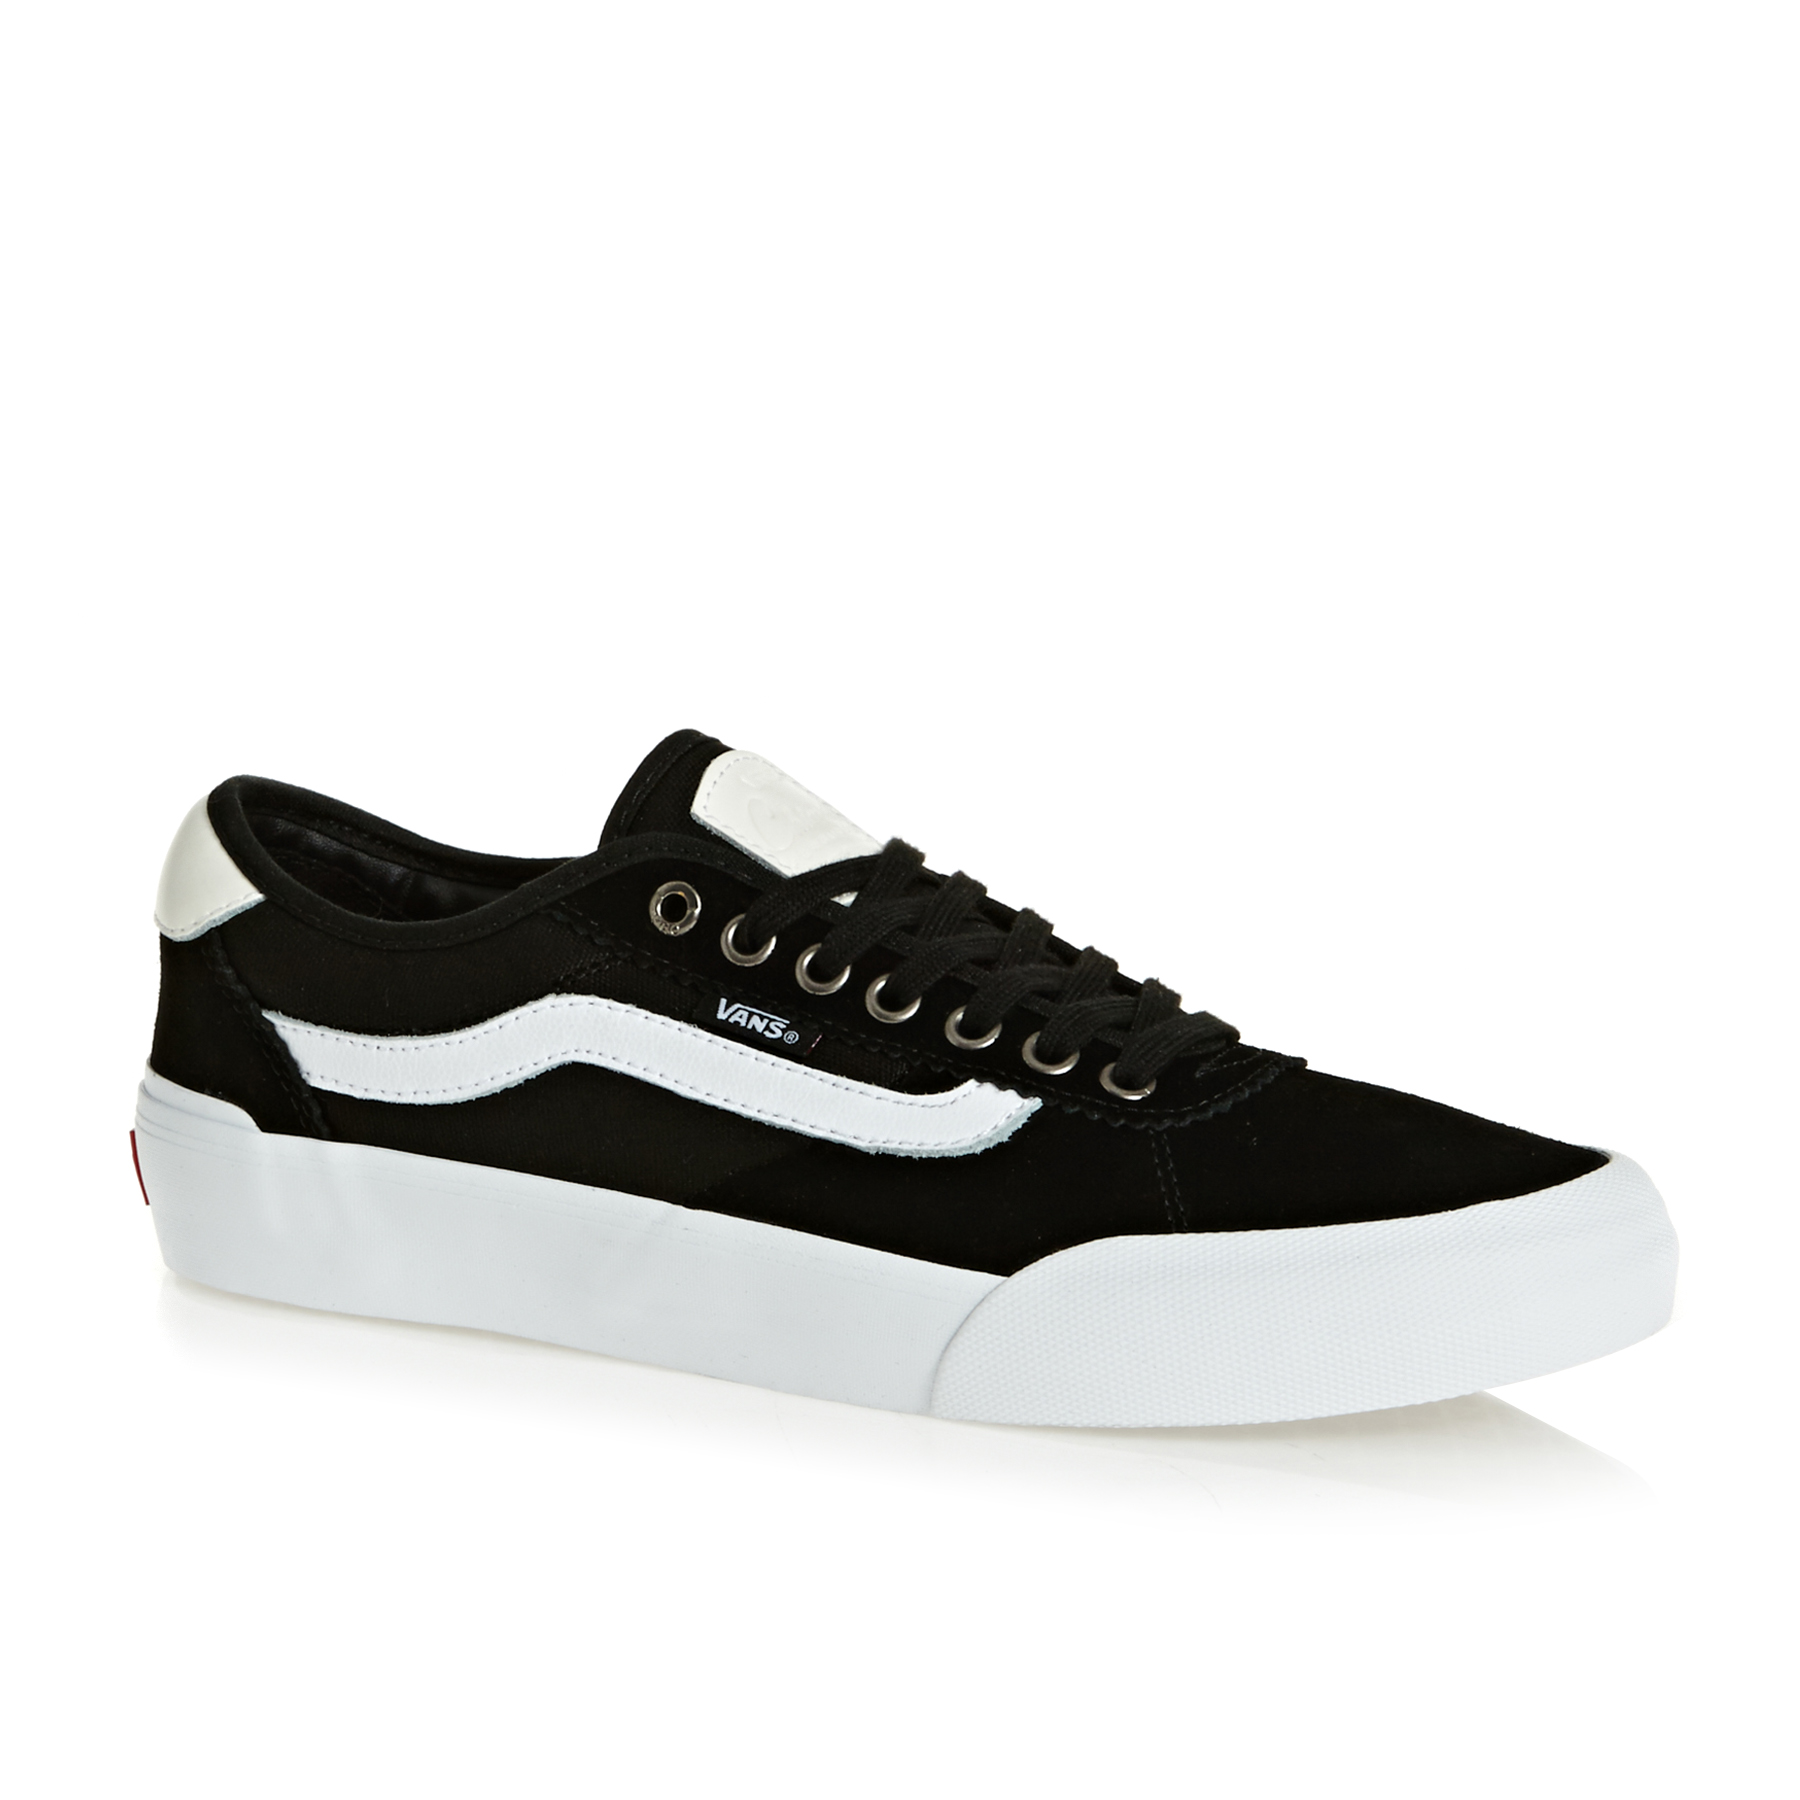 Vans Chima Pro 2 Shoes - Free Delivery